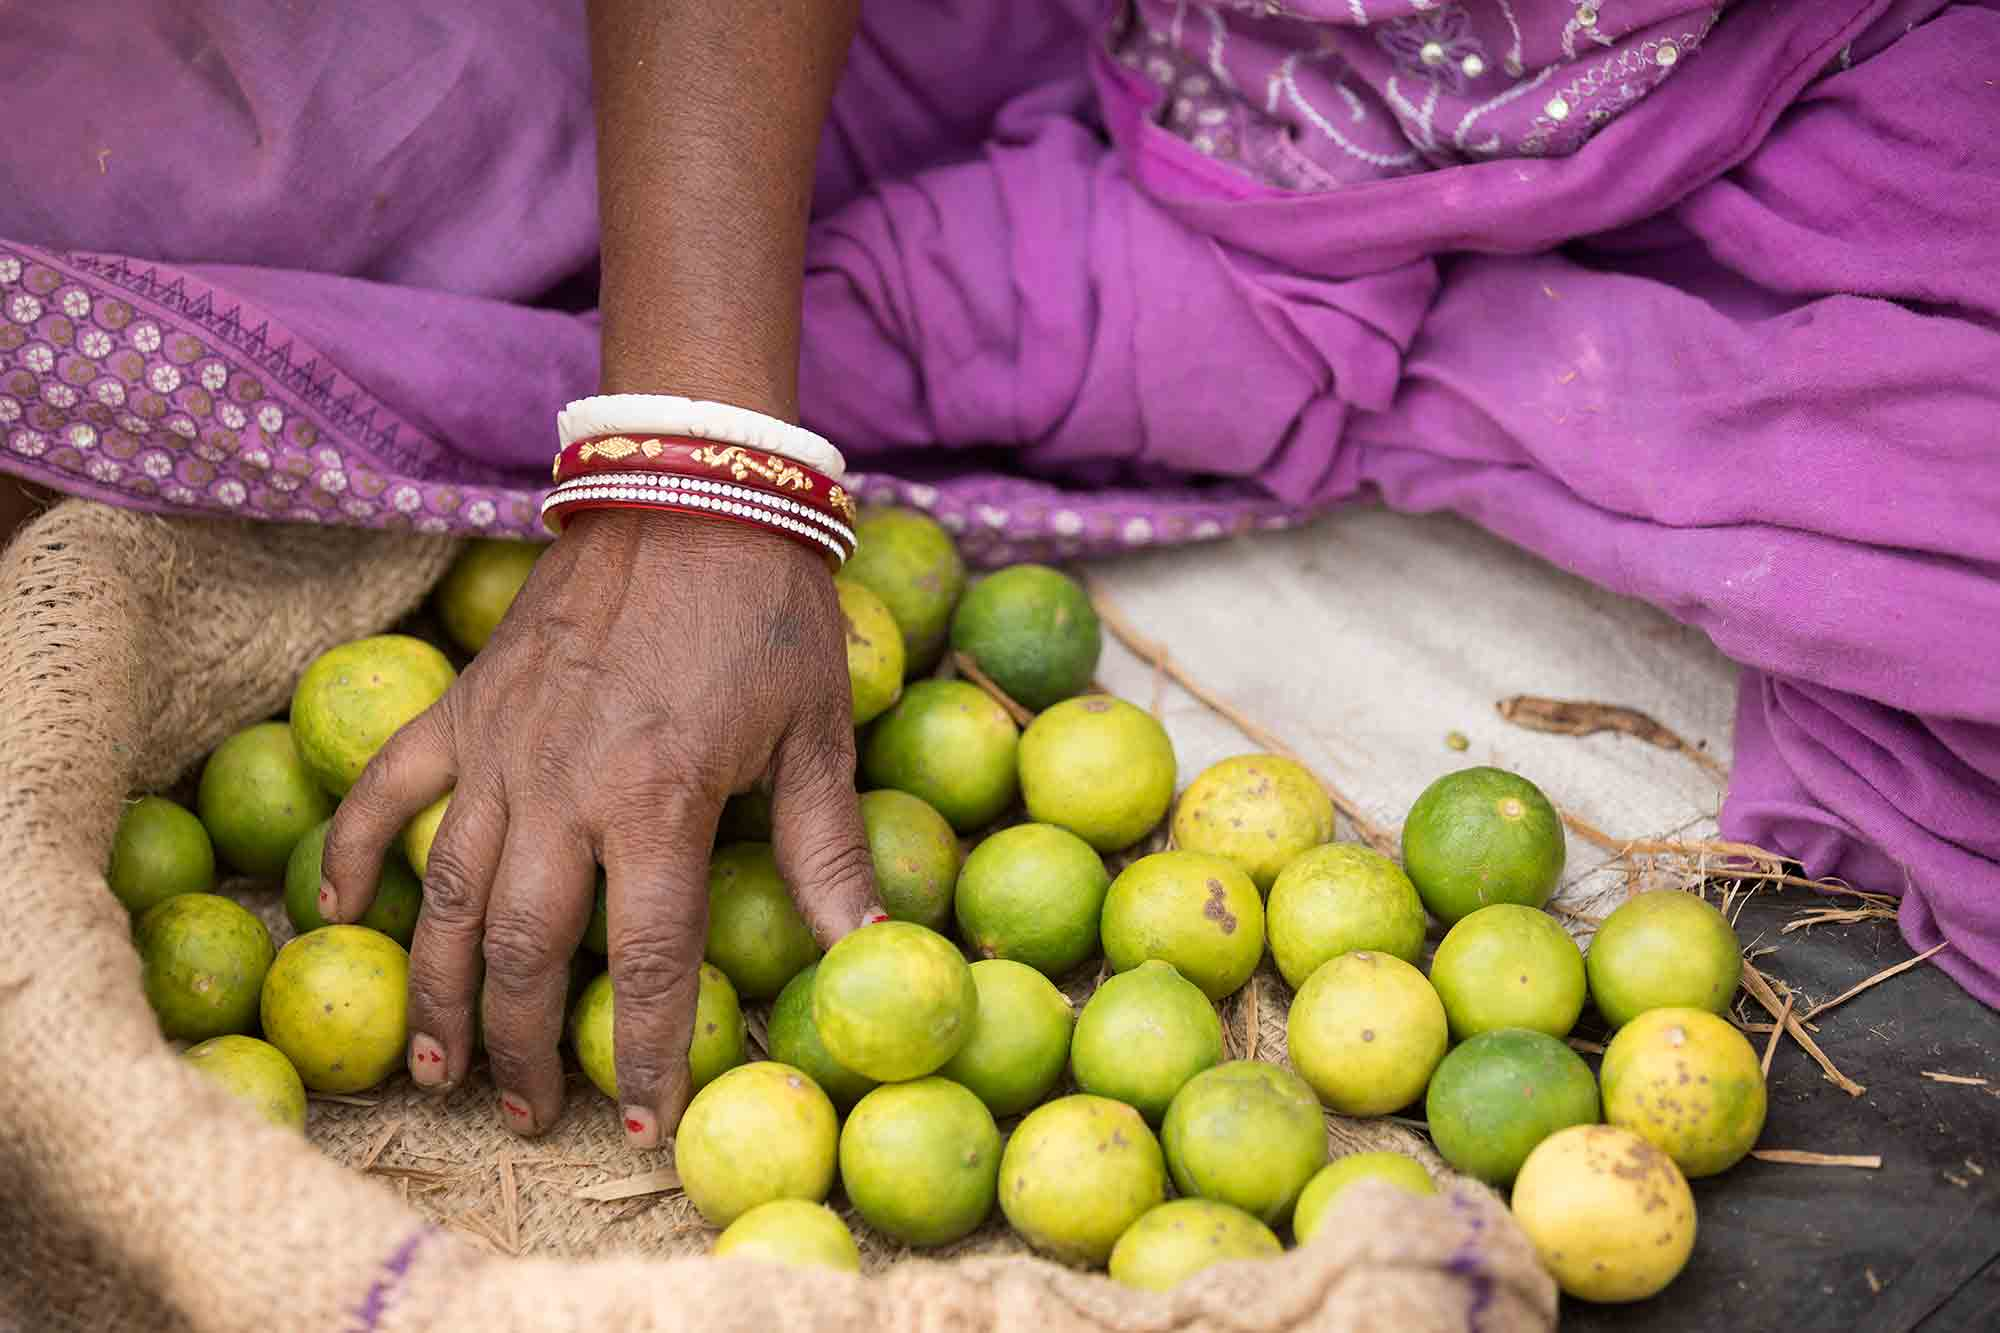 hands-market-woman-limes-kolkata-india